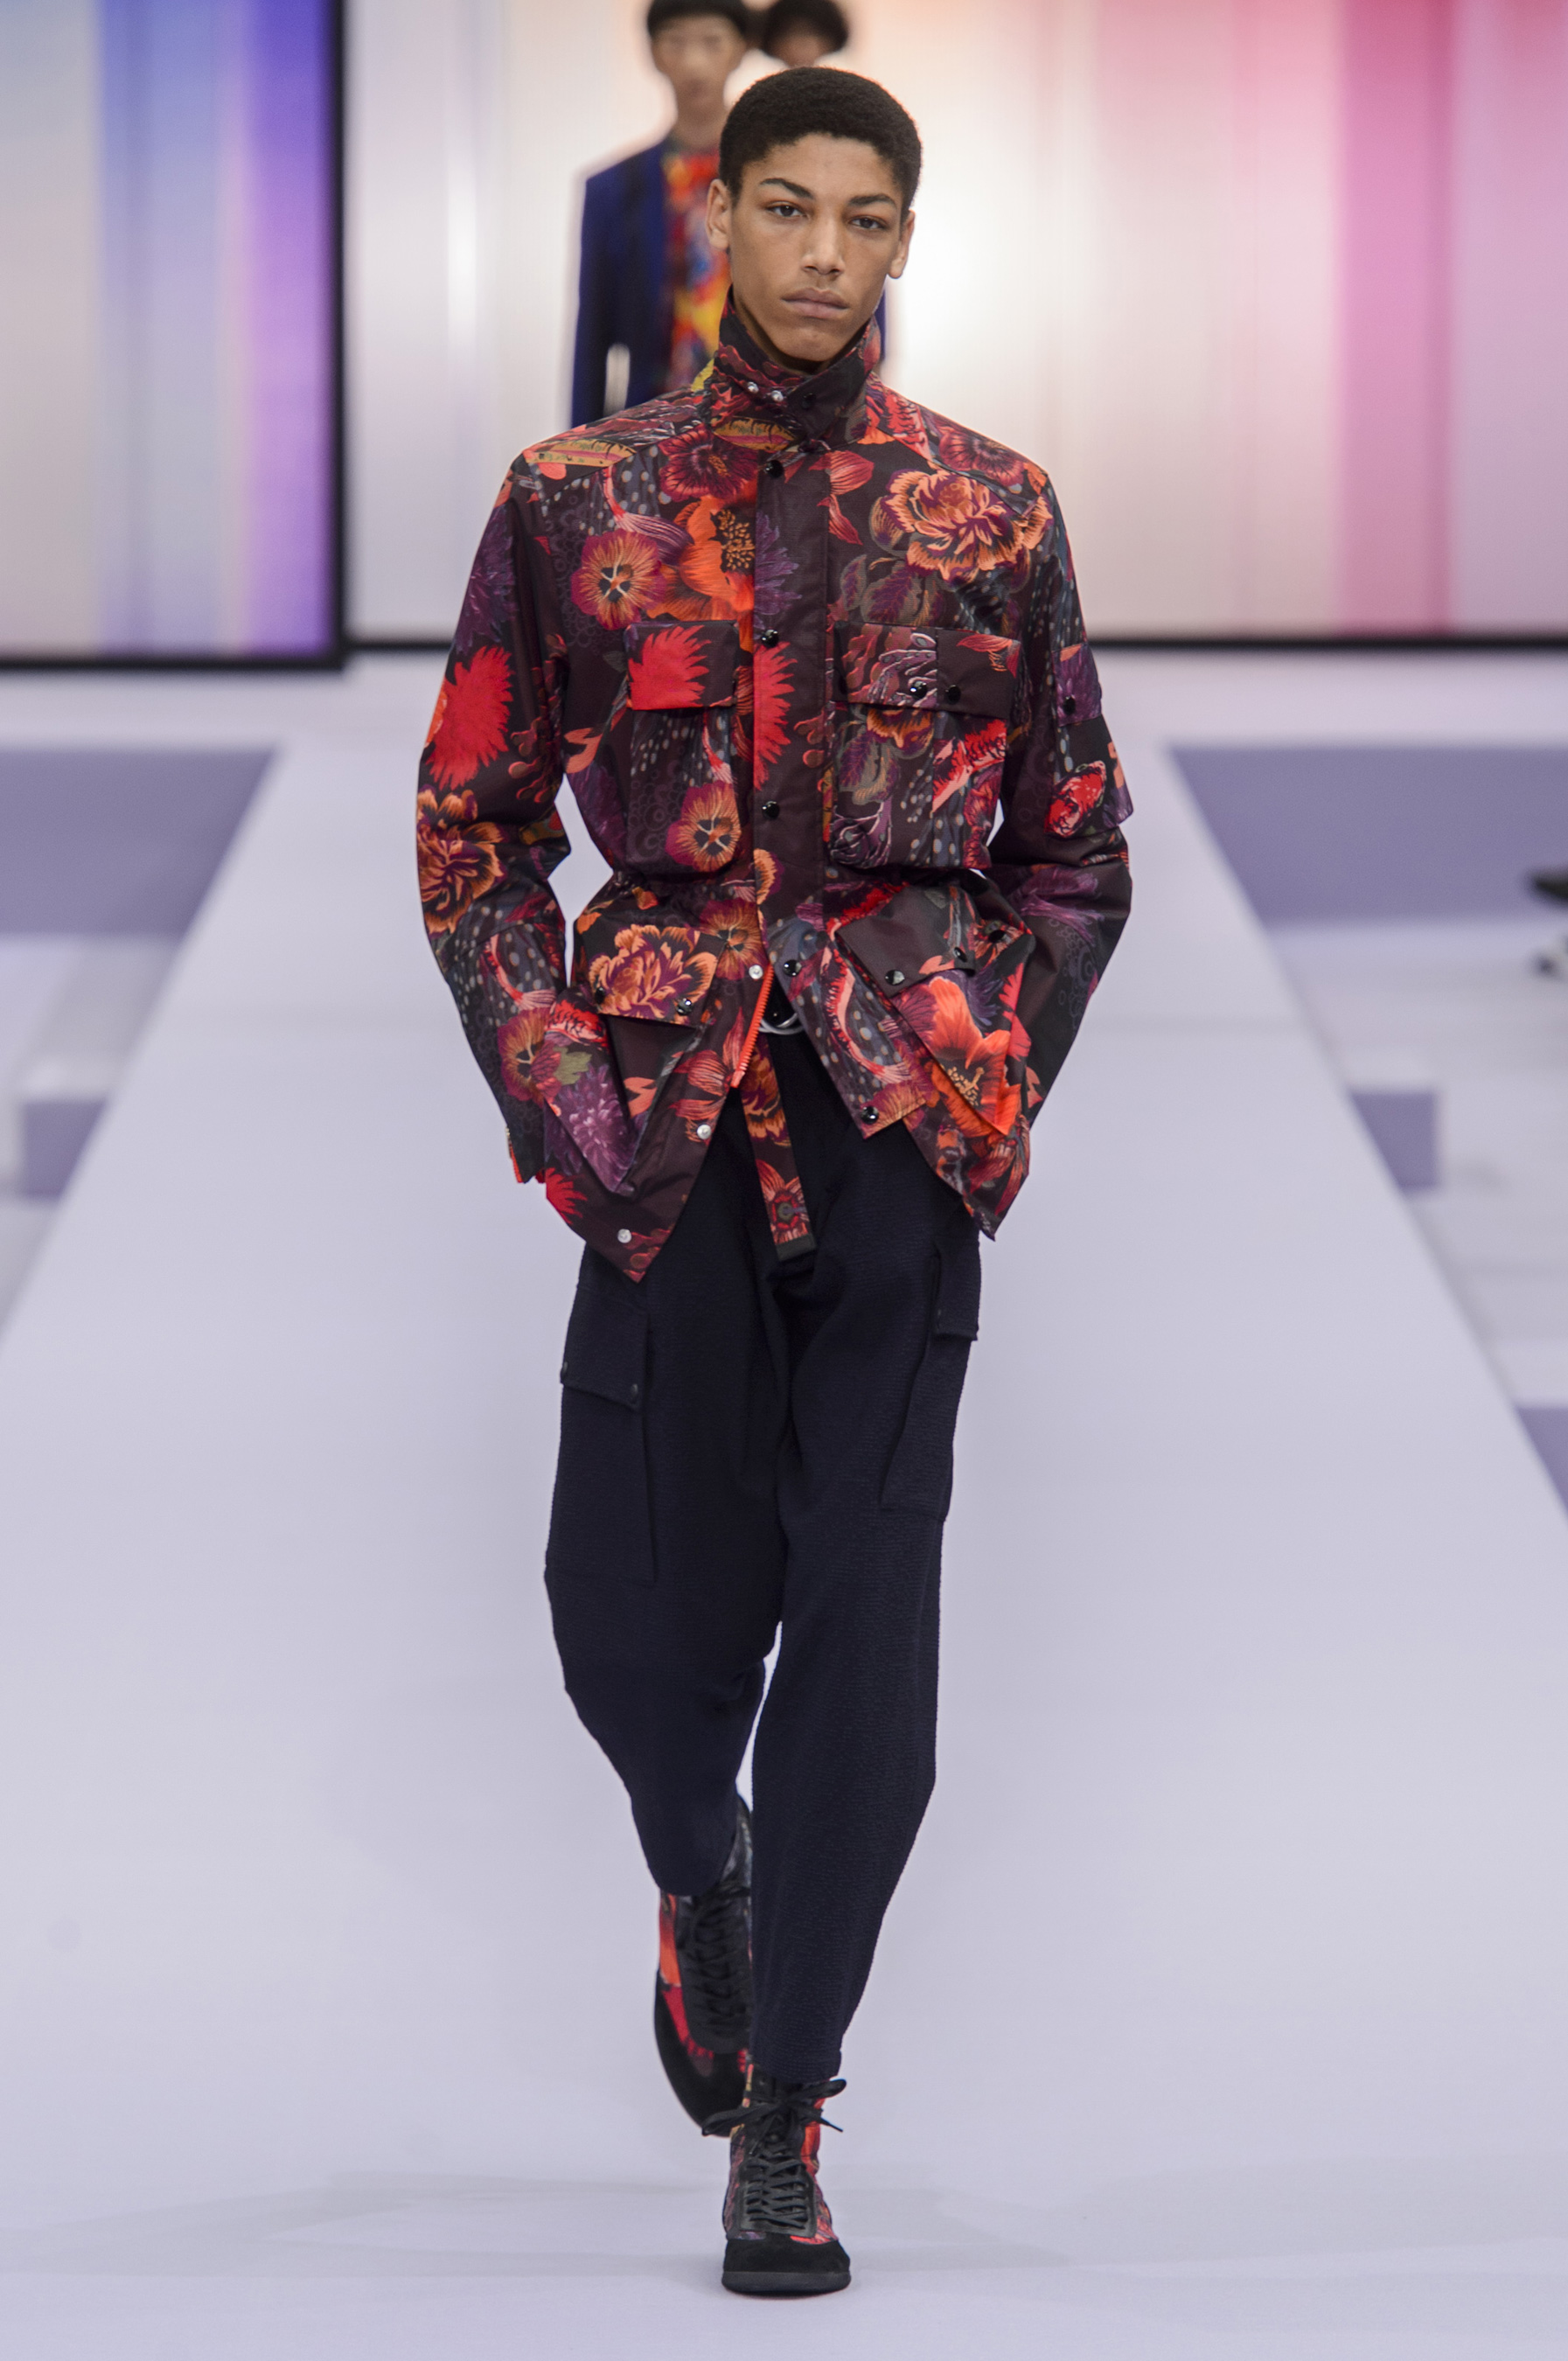 Fashion style Smith paul mens spring runway for girls